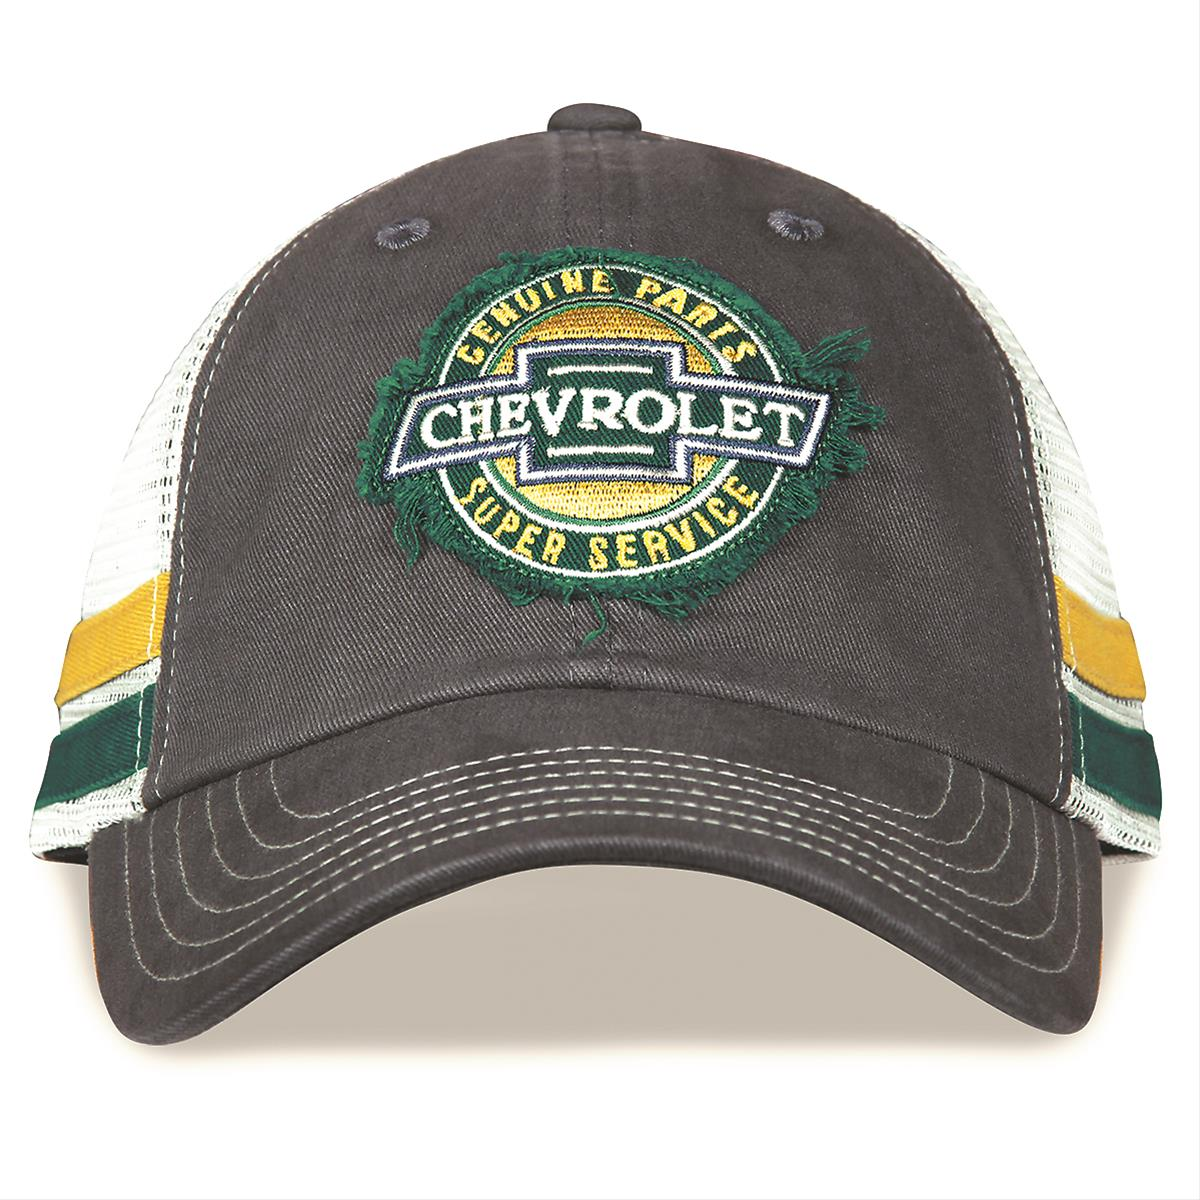 6a89681bad6 Chevrolet Super Service Trucker hat 37289 - Free Shipping on Orders Over   99 at Summit Racing